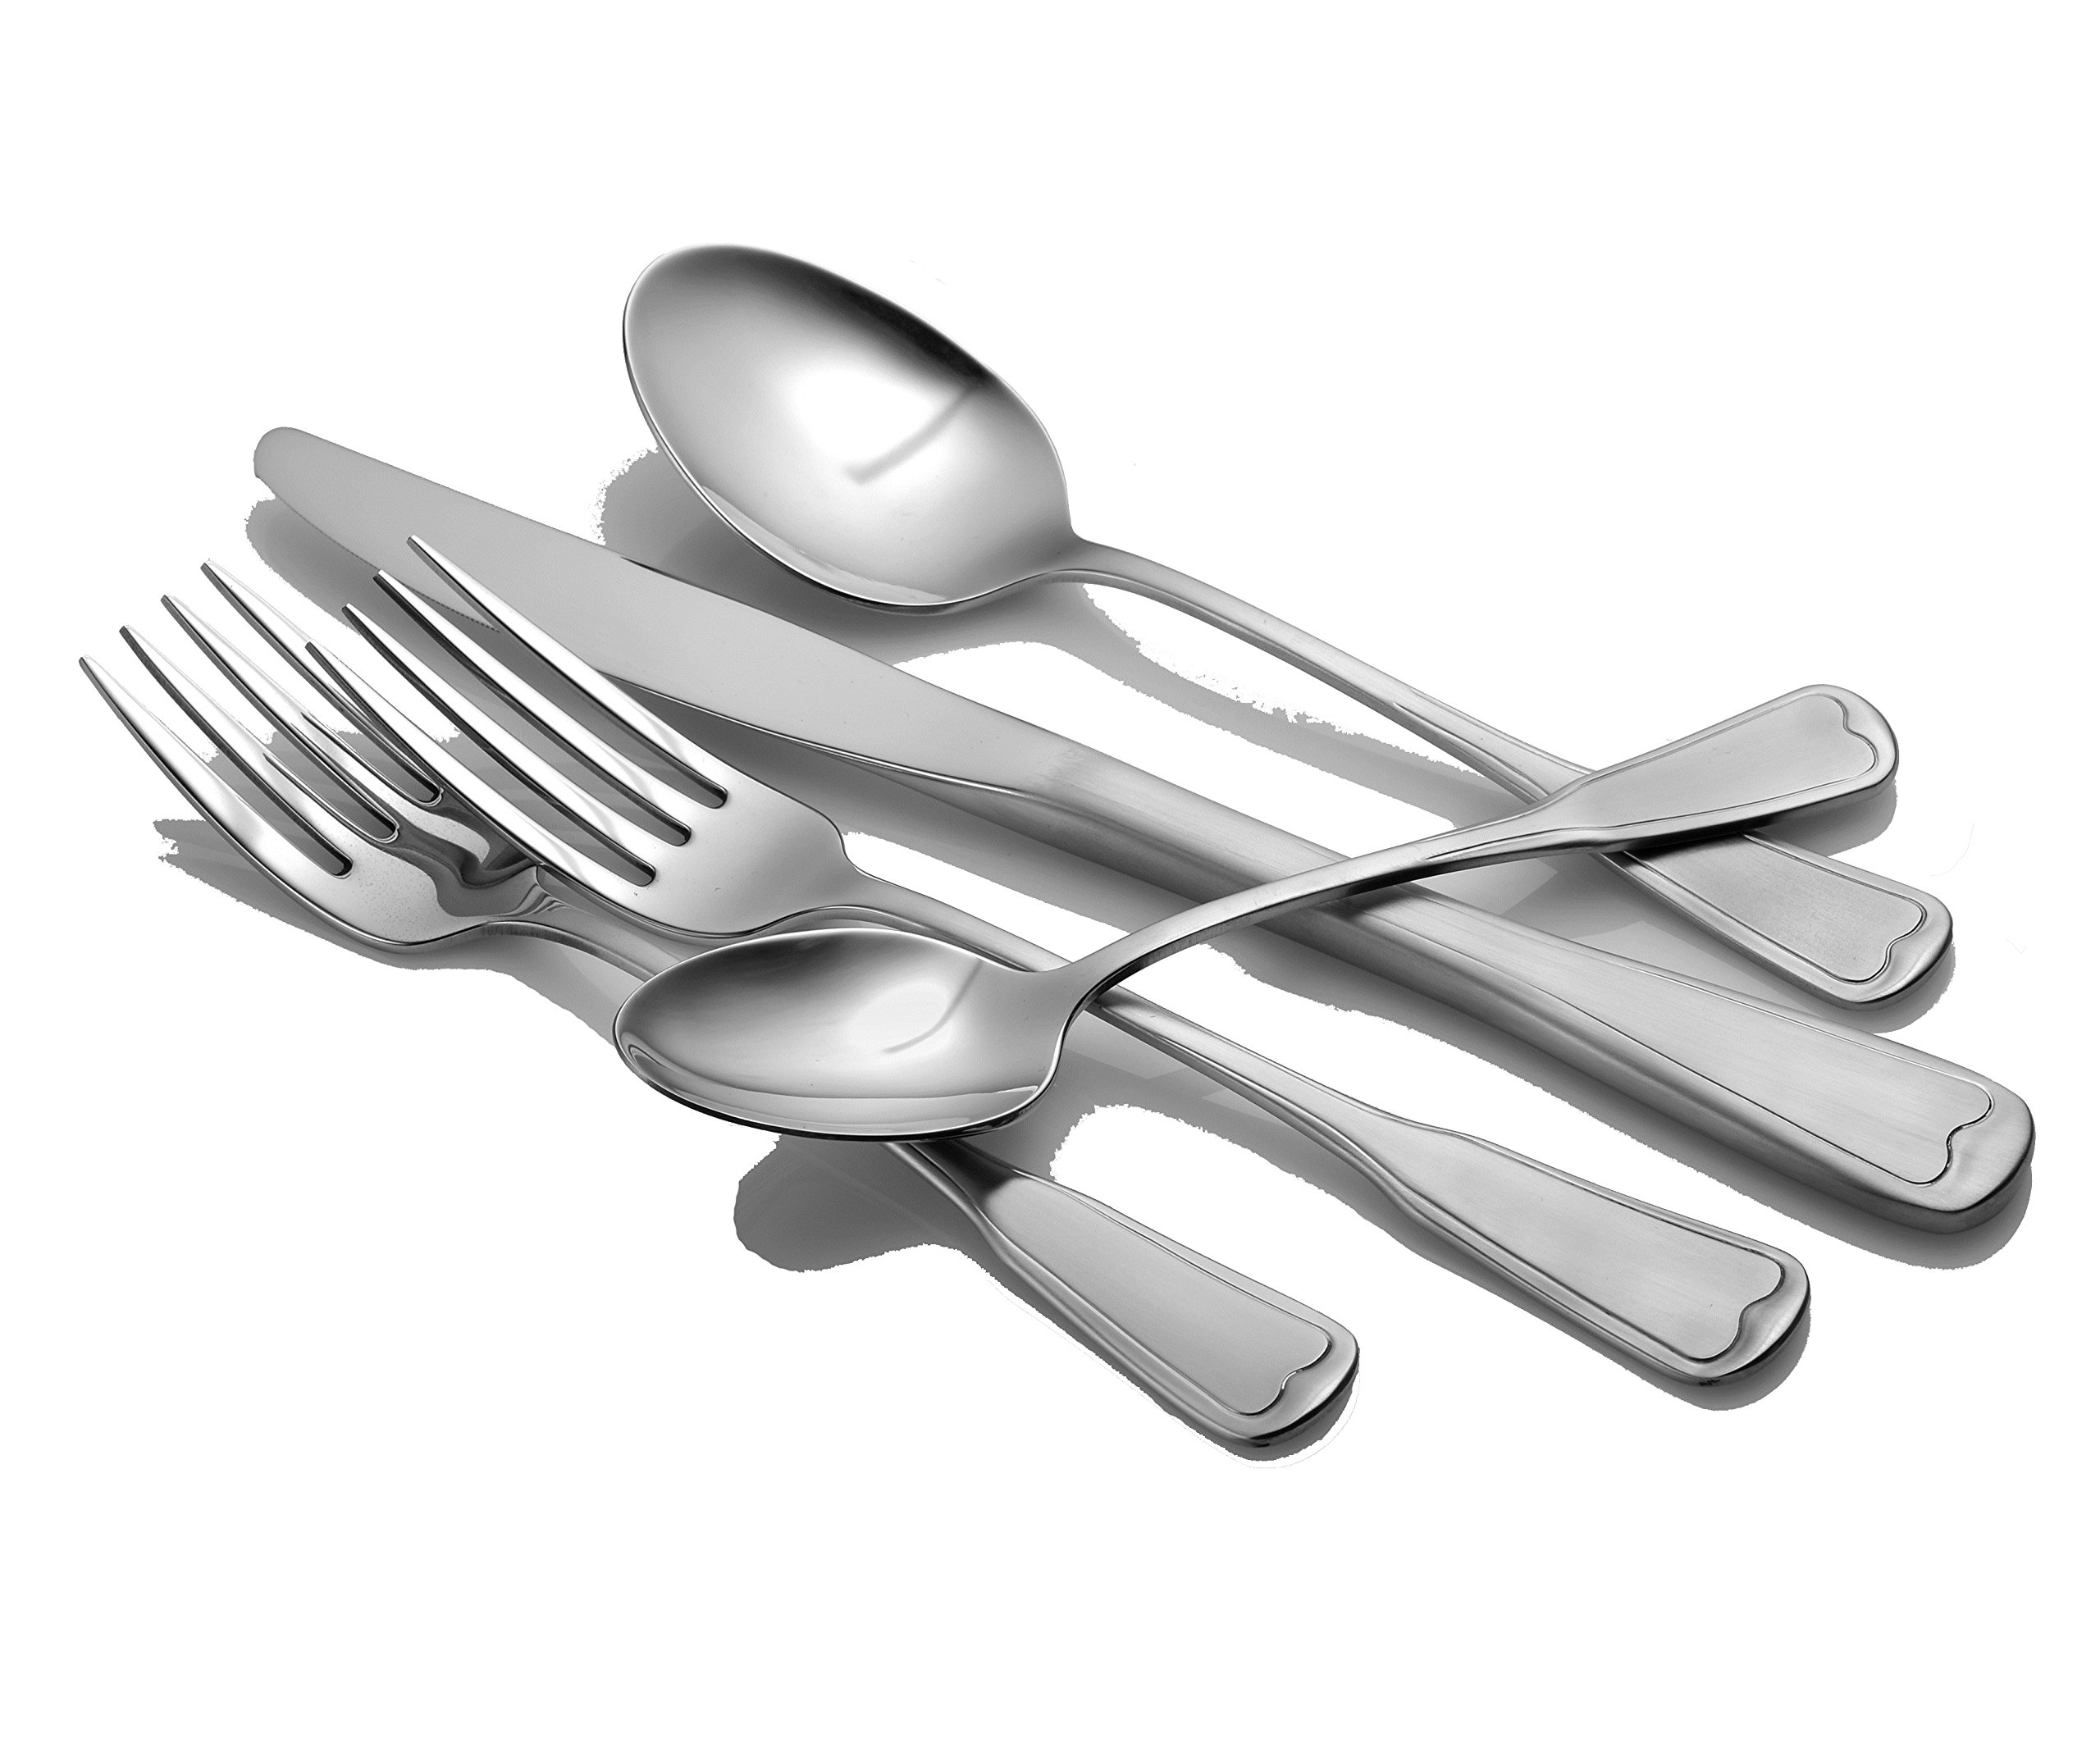 Liberty Tabletop Satin Richmond 20 Piece Flatware Set service for 4 stainless steel 18/10 Made in USA by Liberty Tabletop (Image #3)